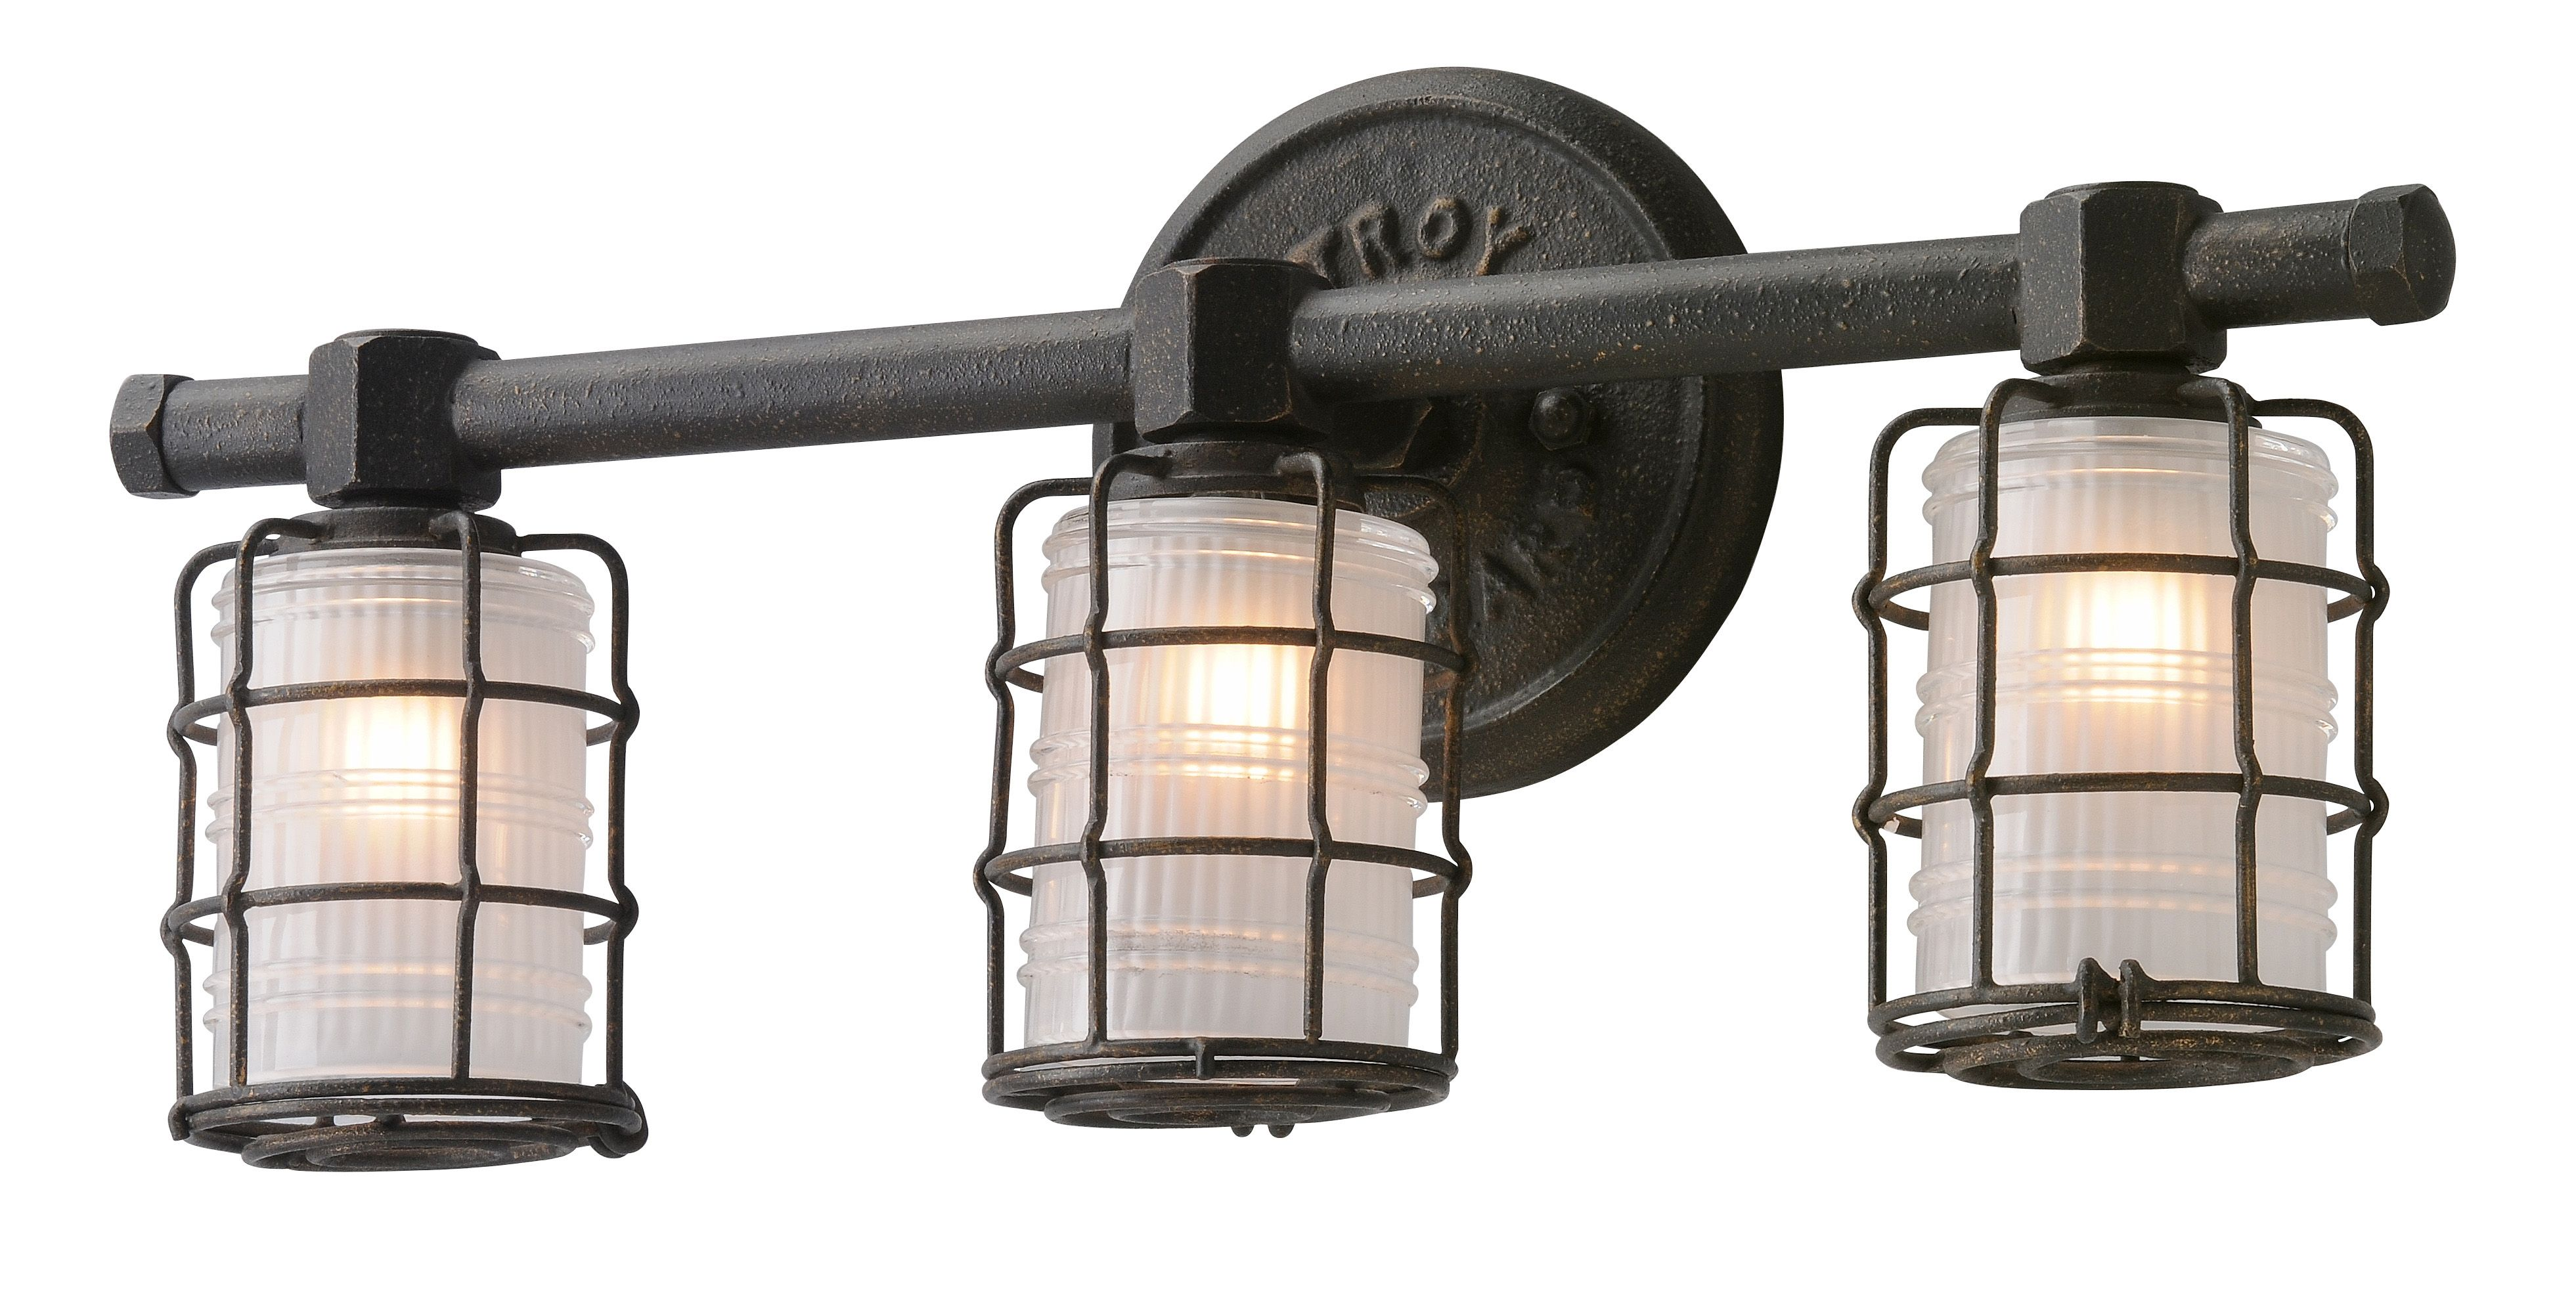 Mercantile by Troy Lighting | Industrial bathroom lighting ...